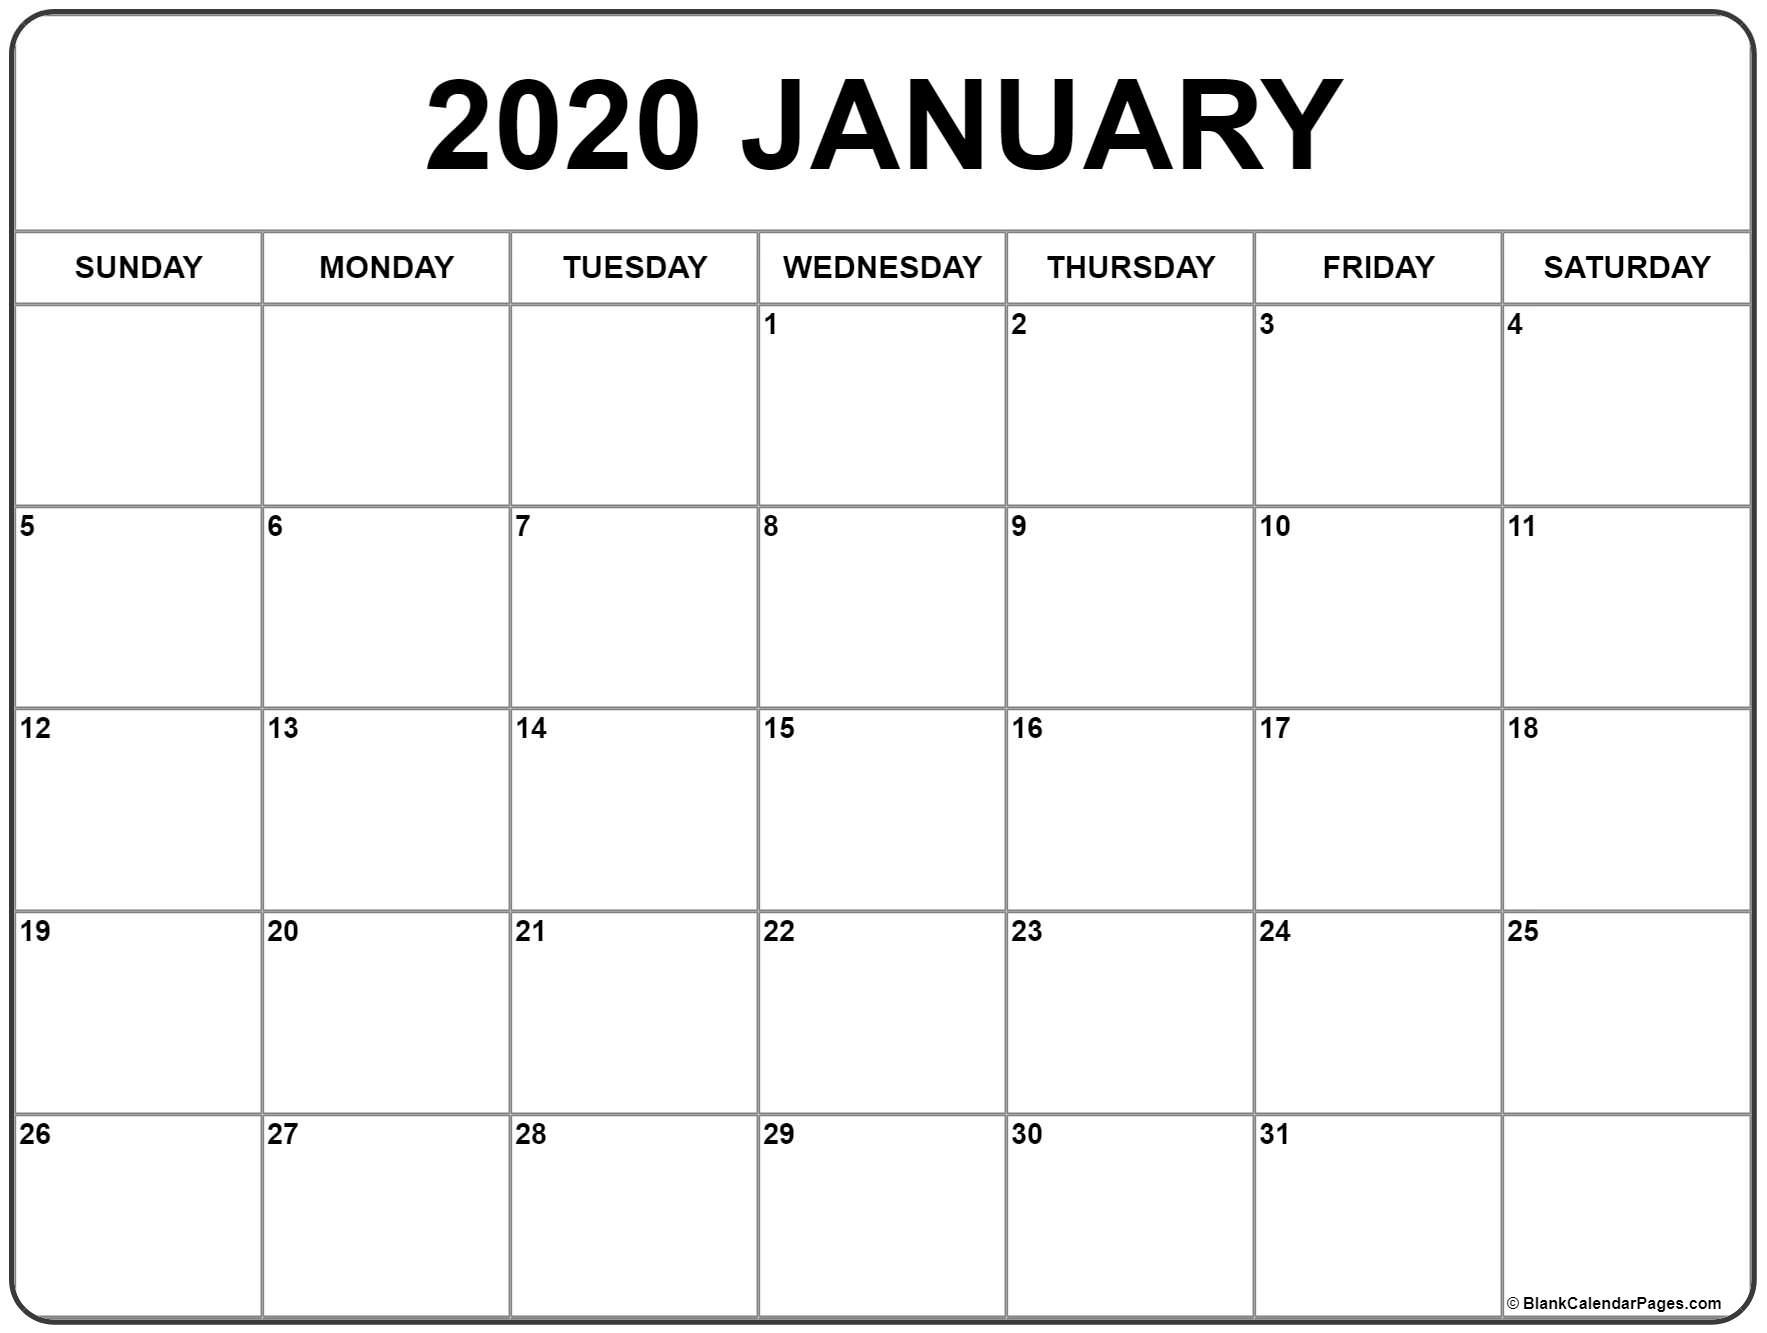 Free 2020 Monthly Calendar - Zohre.horizonconsulting.co